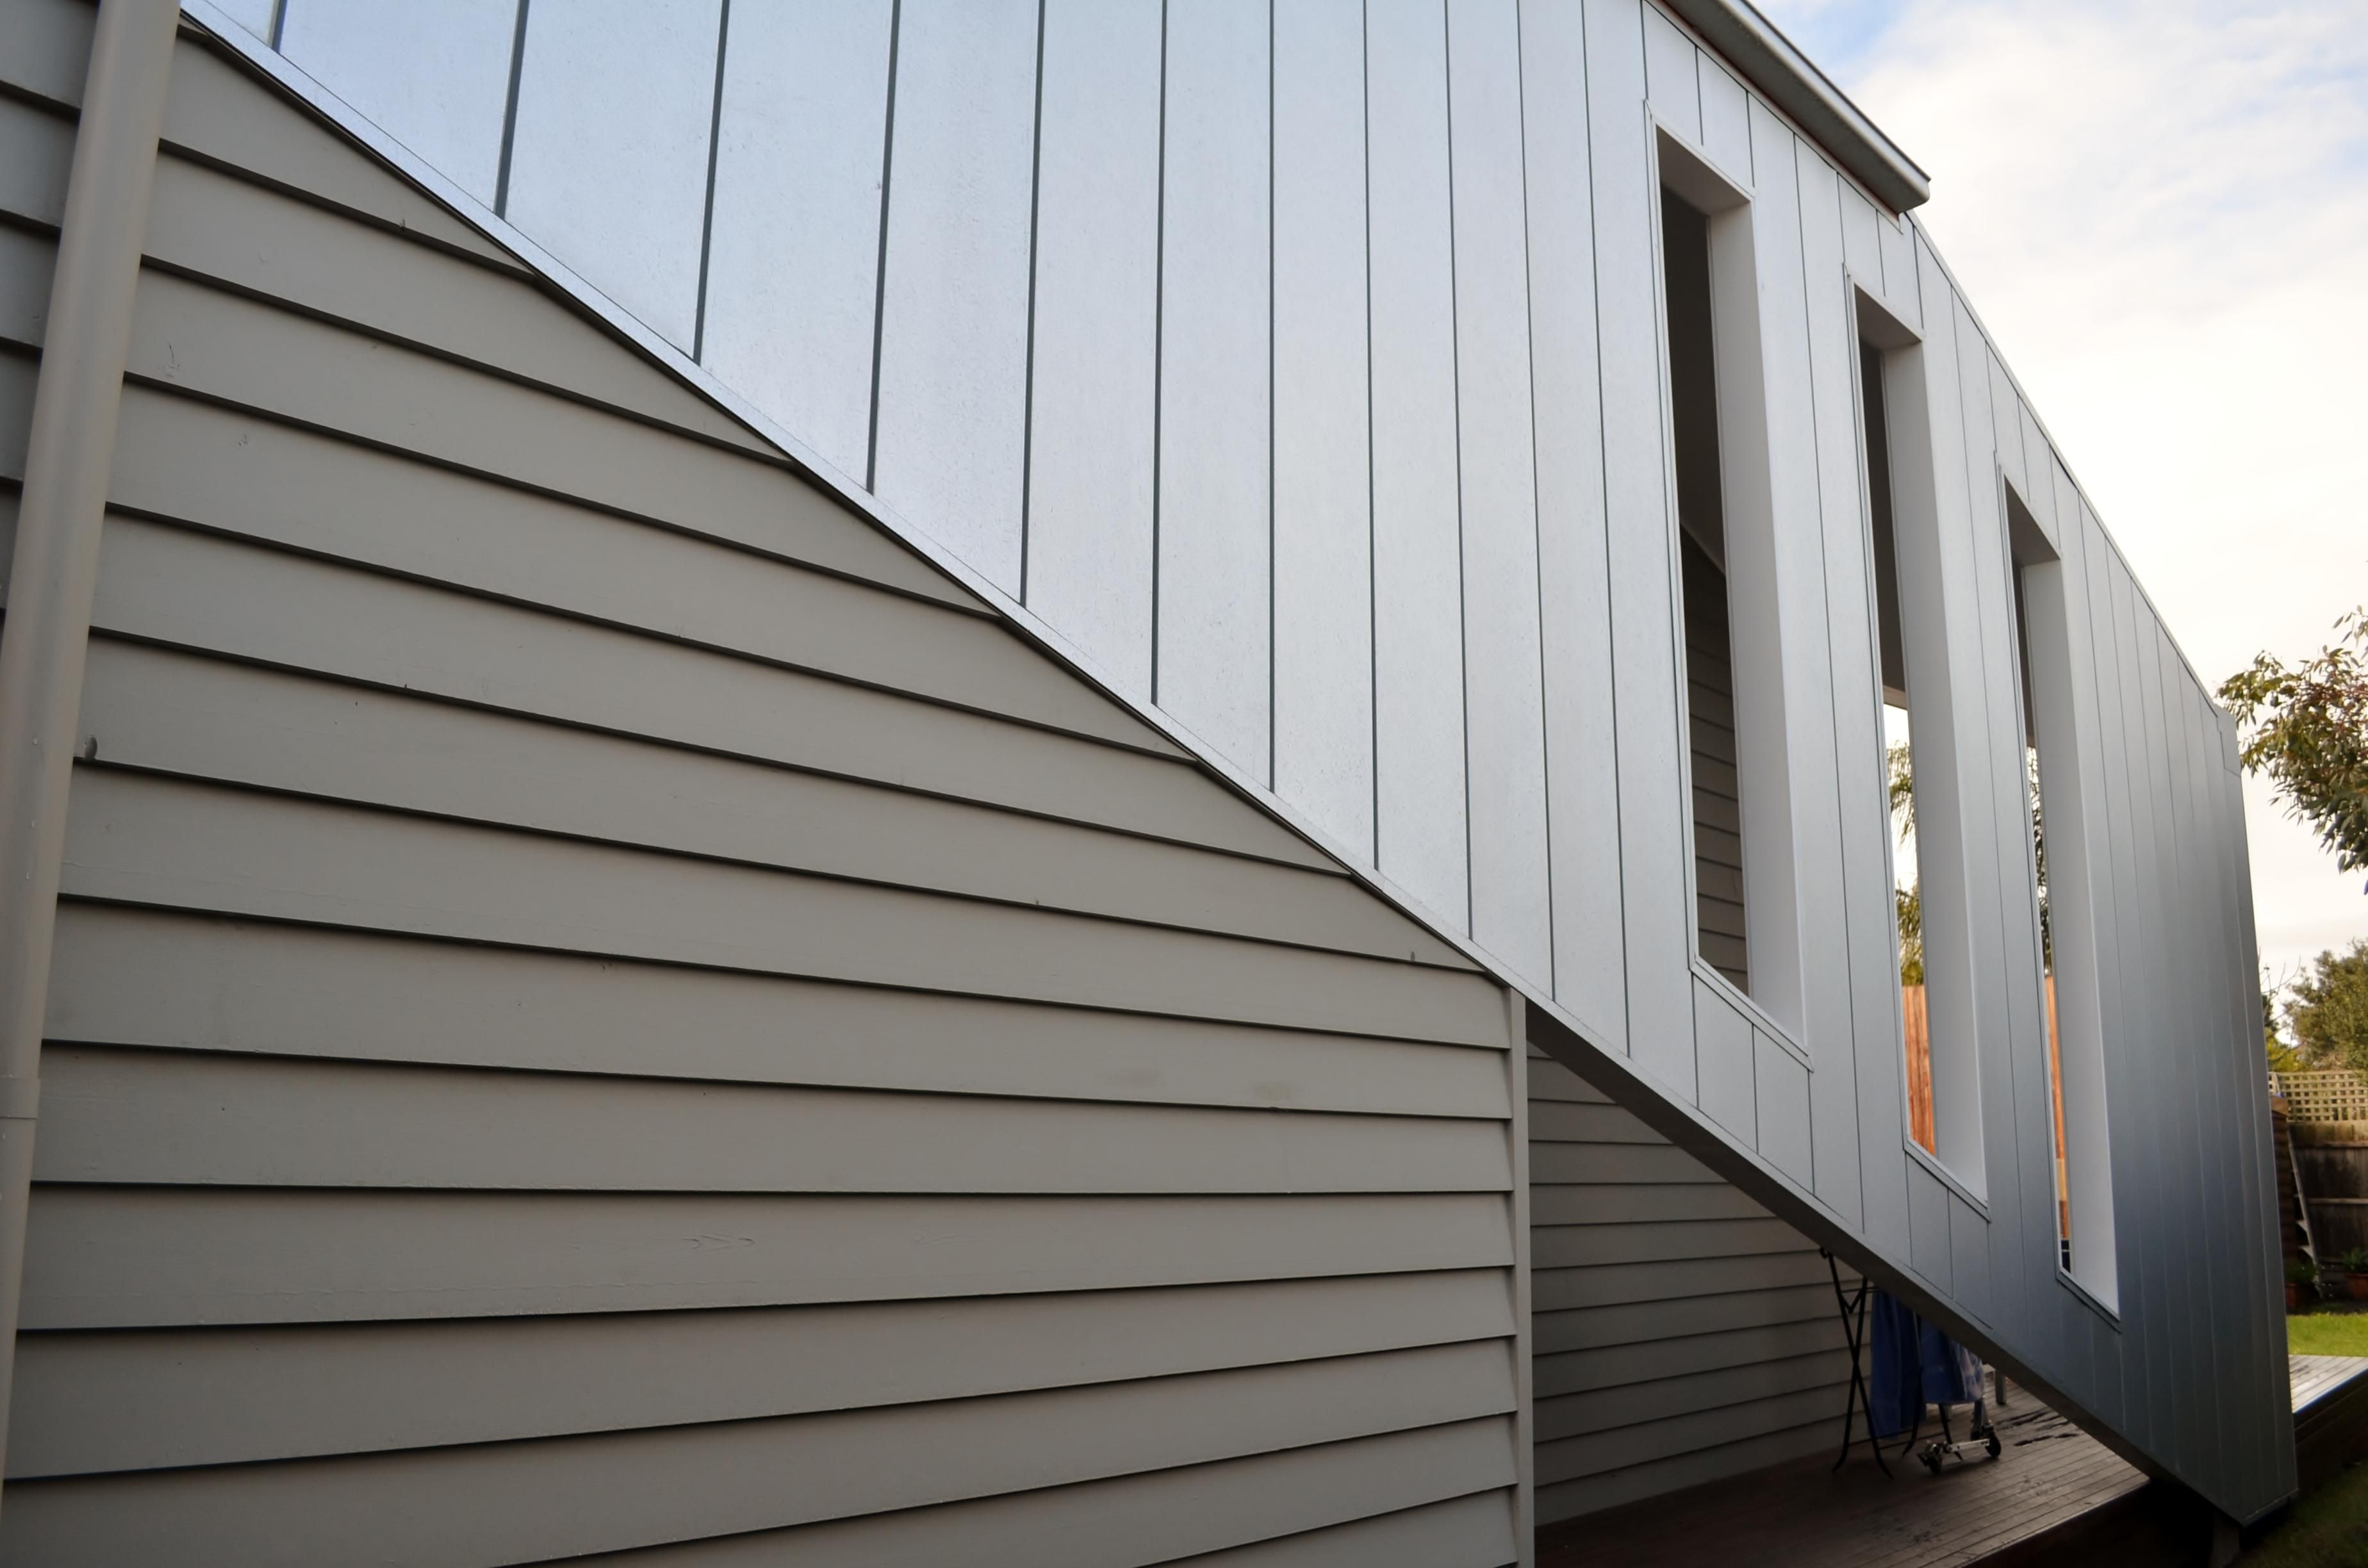 Buy wood plastic wall panel material uk best low cost - Exterior plastic cladding for houses ...